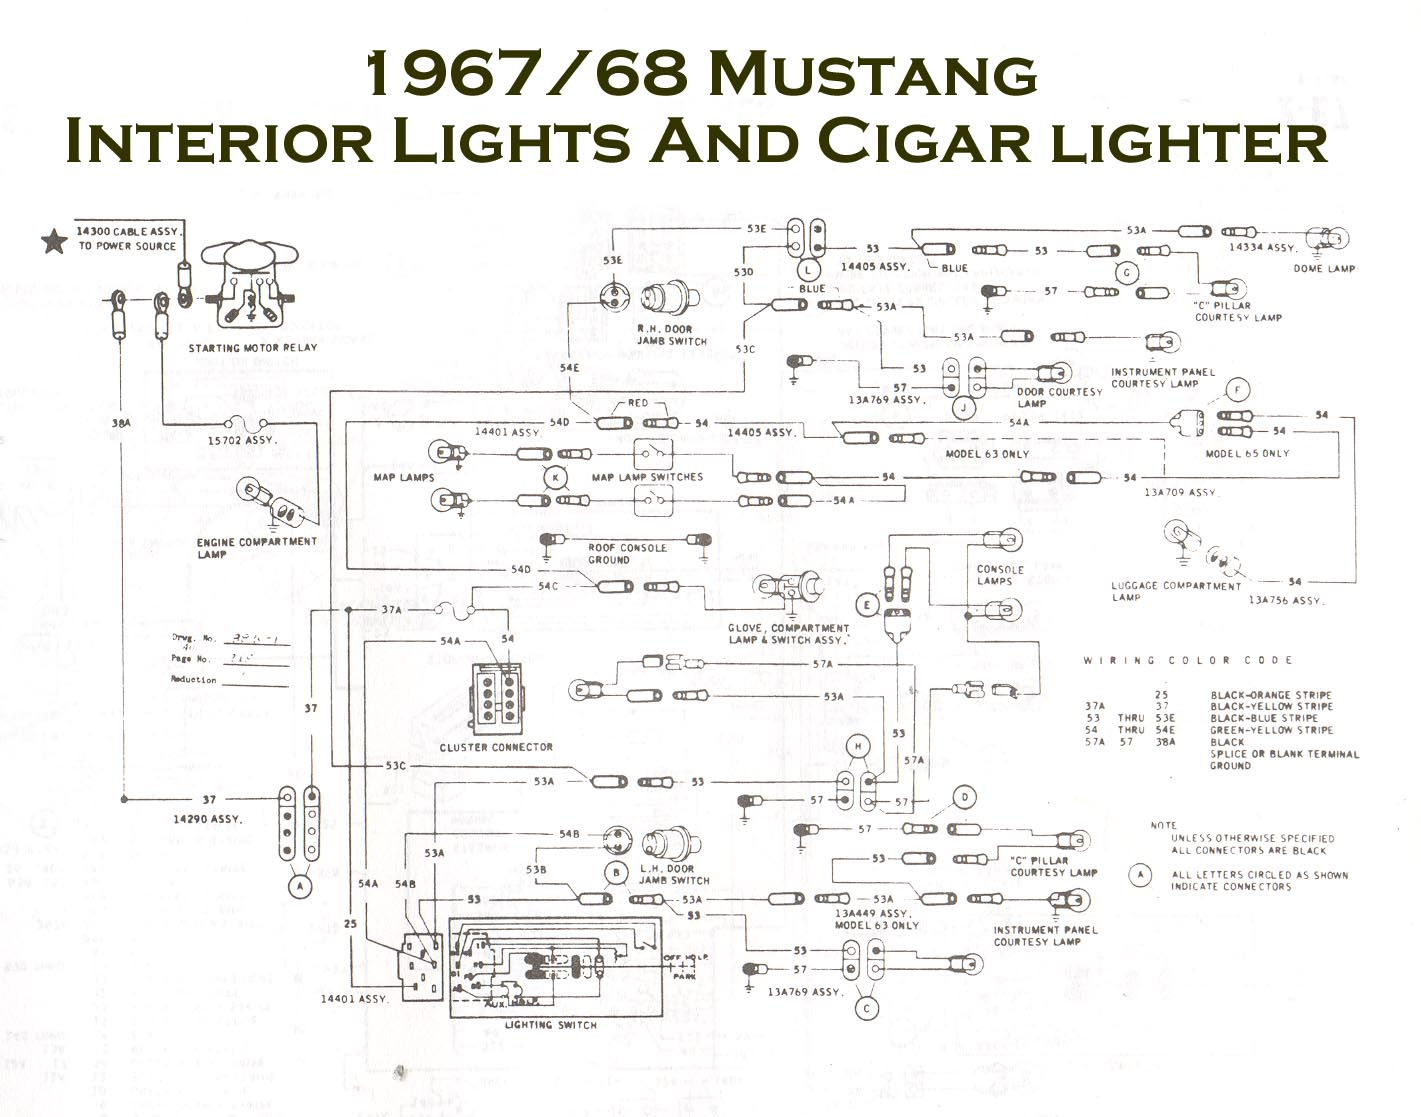 1967 68_console_wiring_diagram vintage mustang wiring diagrams 2004 volvo s40 radio wiring diagram at panicattacktreatment.co